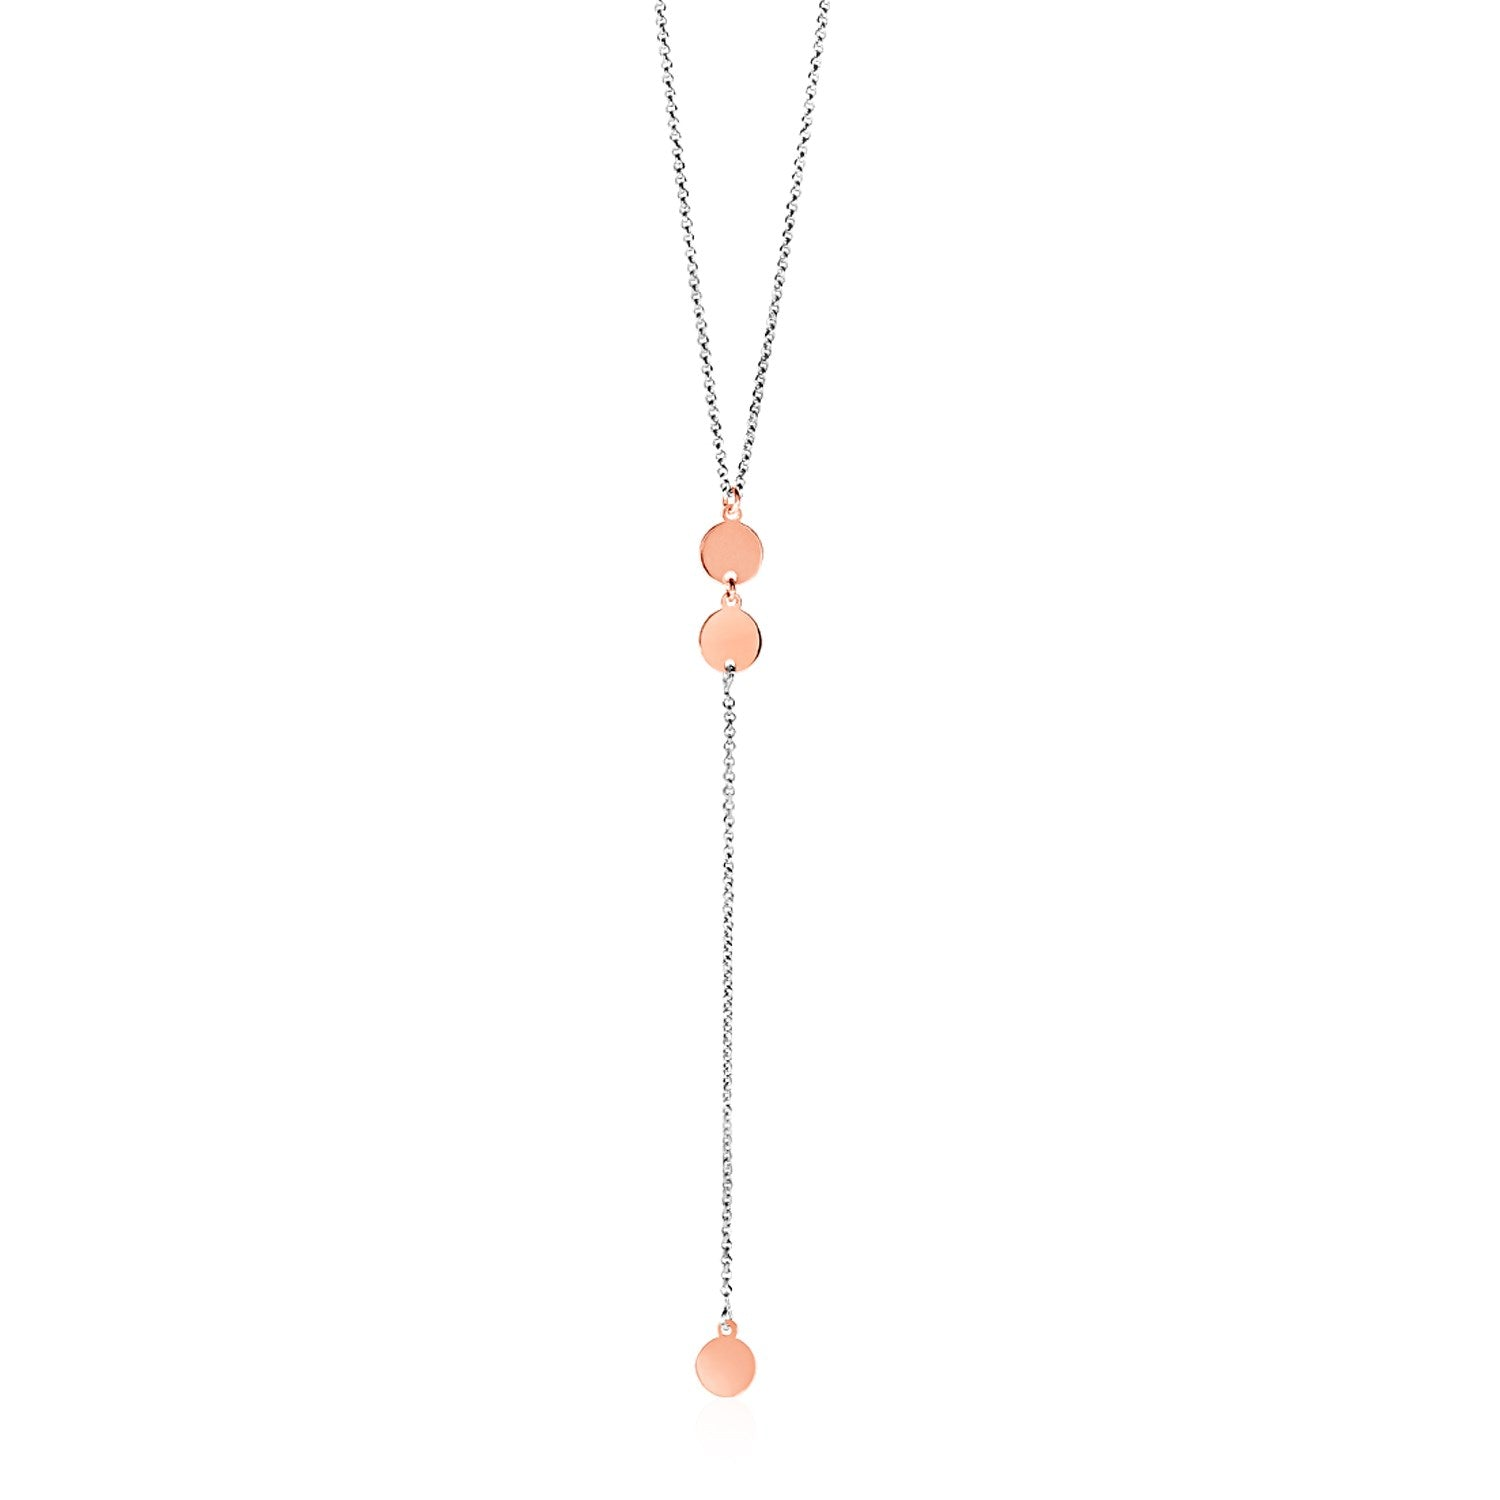 Lariat Style Necklace with Rose Finish Circles in Sterling Silver